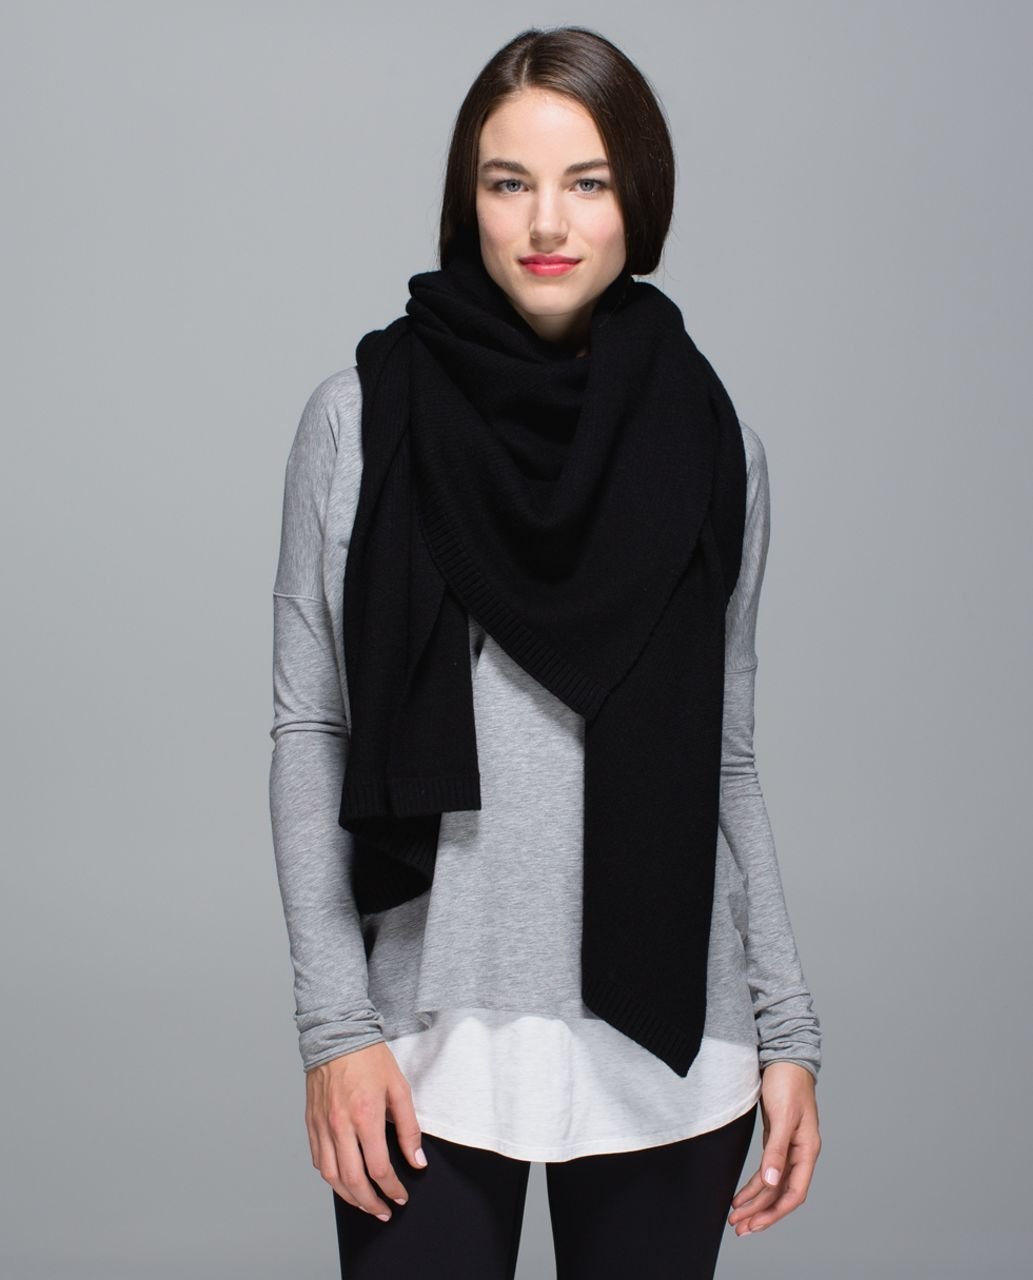 Lululemon Bundle Up Scarf - Black /  Heathered Black